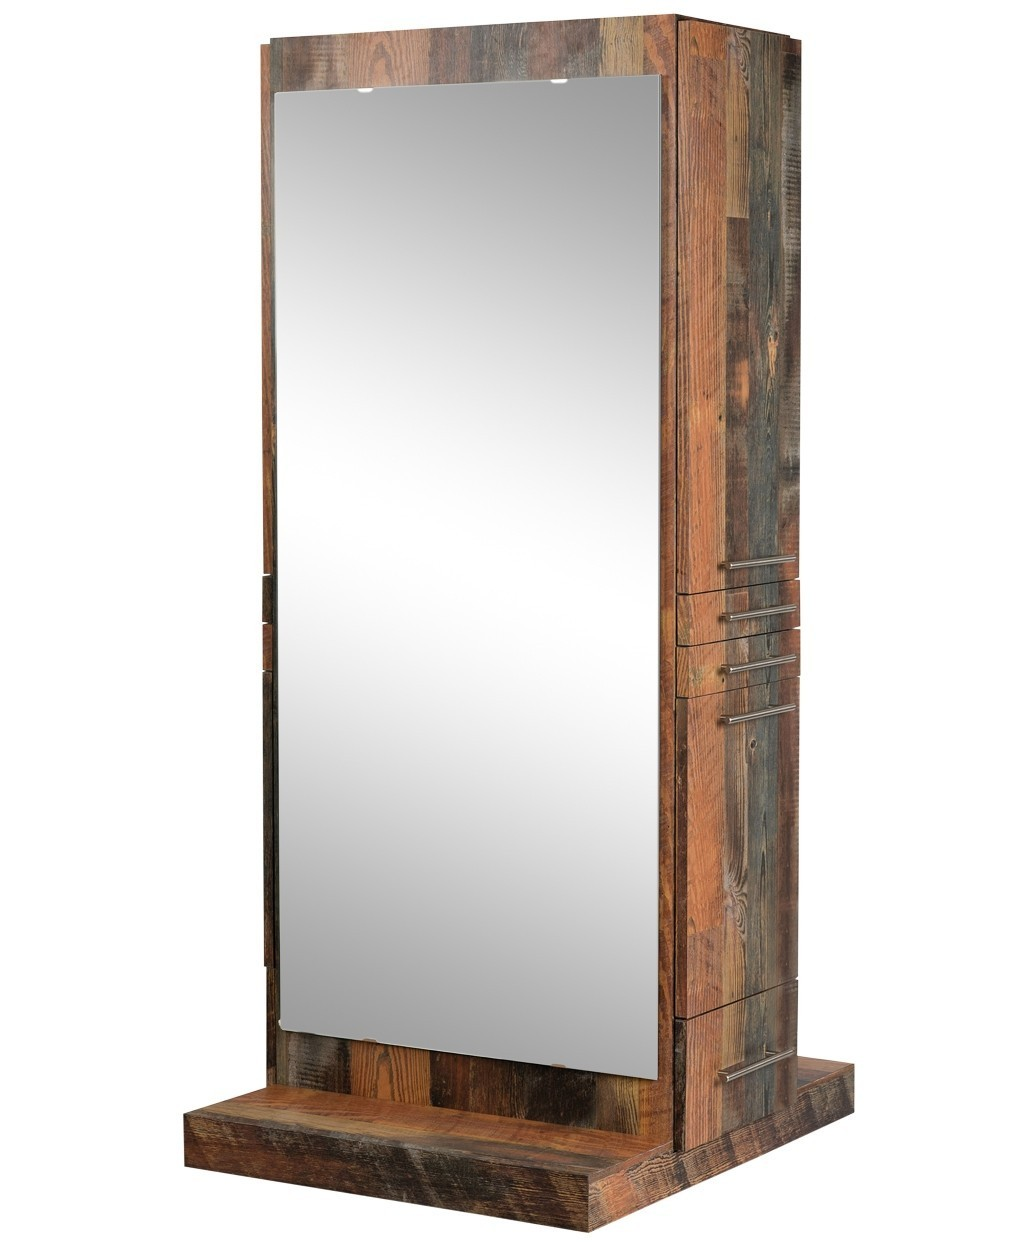 Buy-Rite Beauty's Omni Distressed Double Styling Station